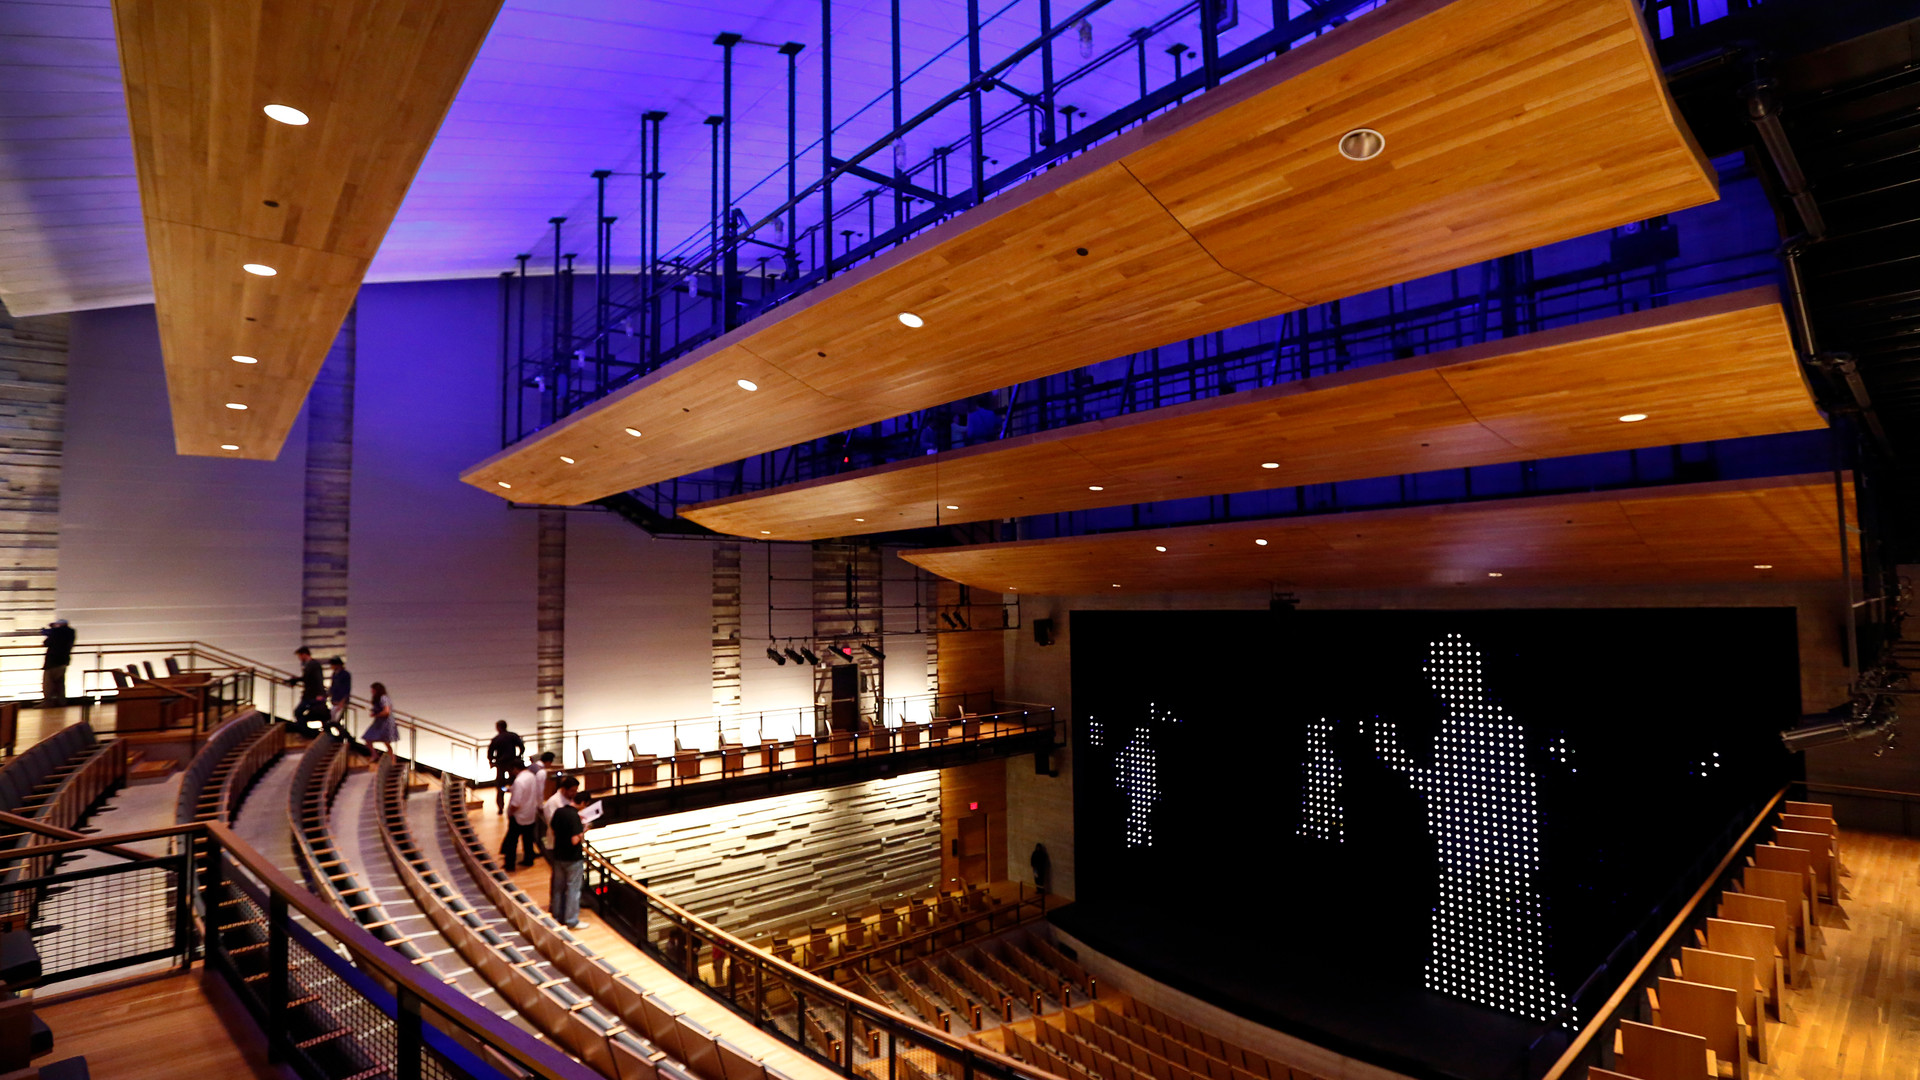 Dallas Performing Arts Center